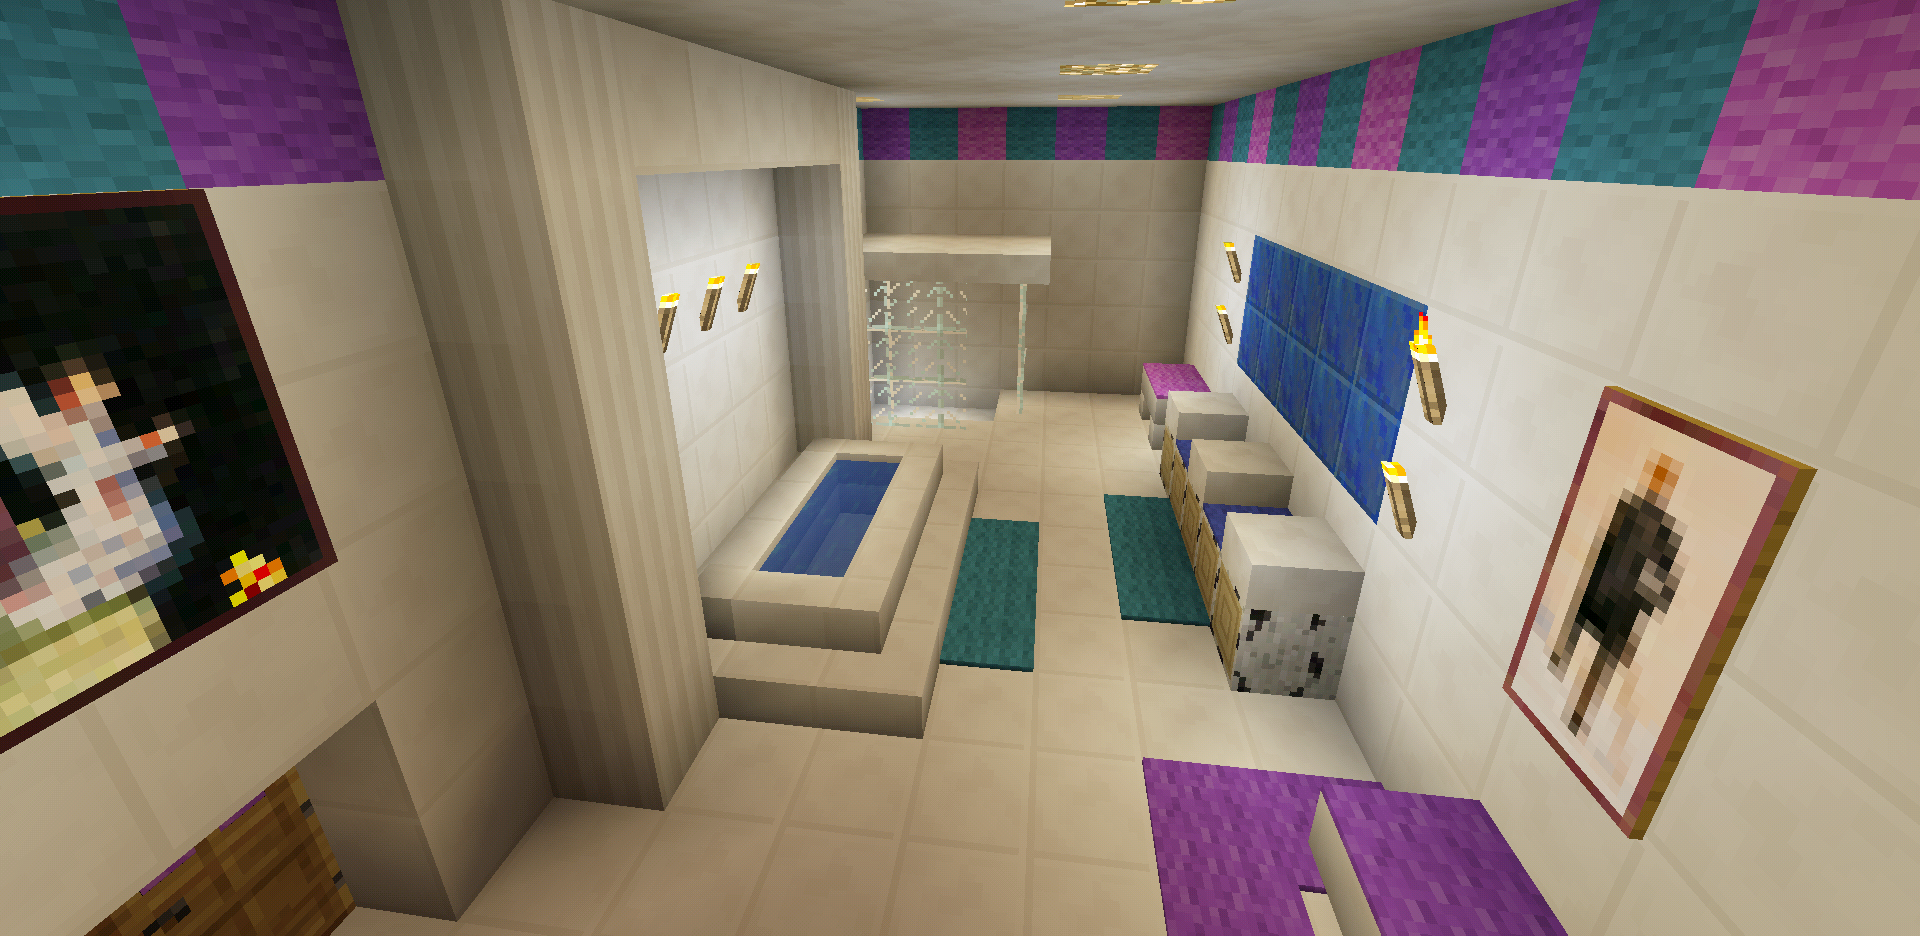 Bathroom Design Minecraft minecraft bathroom pink girl wallpaper wall design shower sink